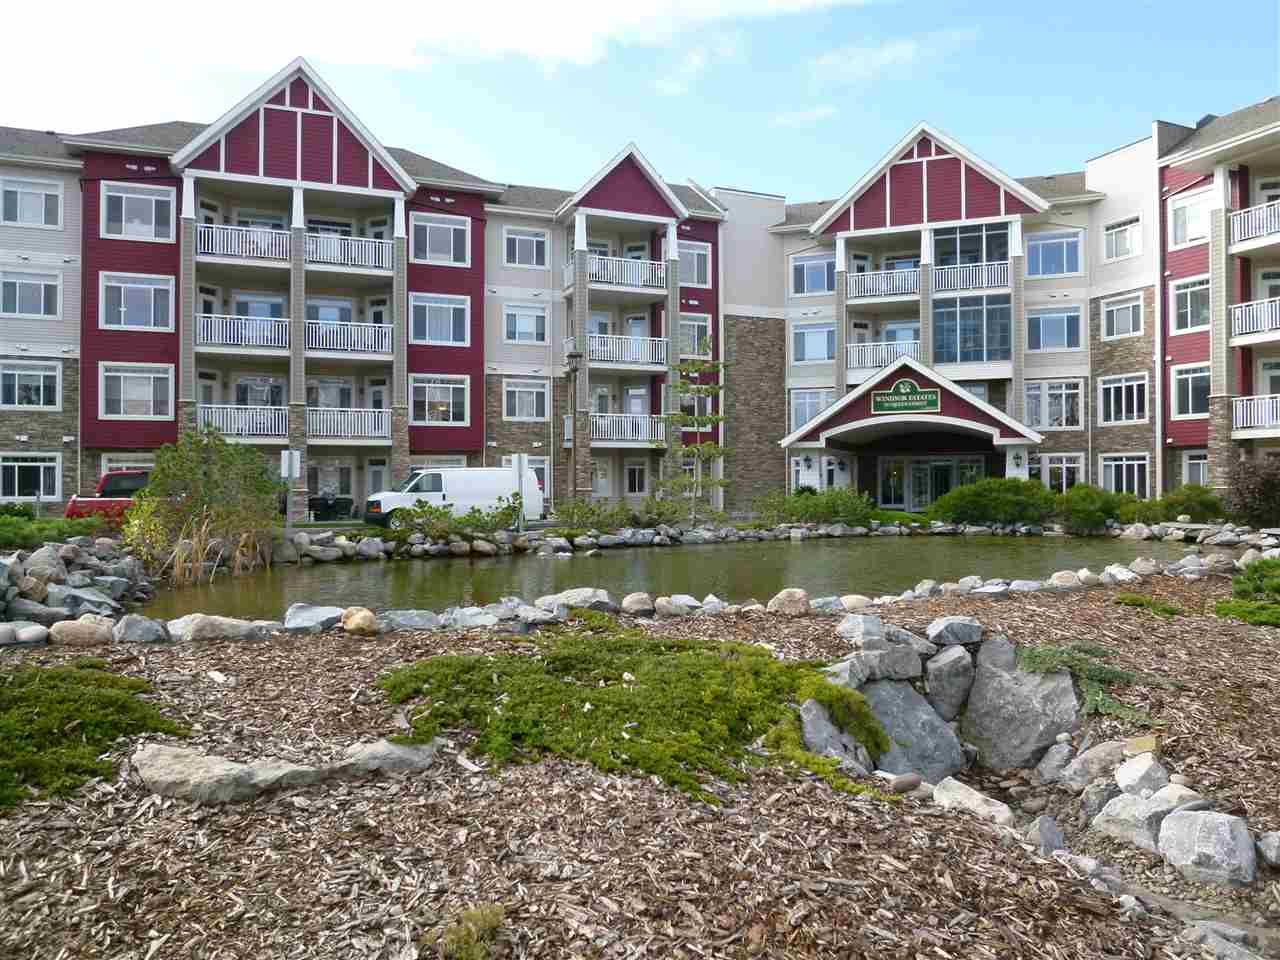 """This great +55 Condo located in the Heart of Spruce Grove, Close to Rexall Centre and all amenities has plenty to offer. The 2 bedroom unit has 2 baths and open space for living room and dining area. Stacked Washer and Dryer in the laundry room comes complete with California closets for laundry sorting. The Master bedroom has an ensuite with large shower and walk-in """"California"""" Closet. The balcony faces North and is quiet and very enjoyable. The Hardwood and Granite Counter Tops finish this unit very well. Once you have admired the Apartment the amenities in the complex are second to none. Large Theater room for family get together's, plenty of activities through out the week to enjoy and also a large Entertaining area with a kitchen for the big Christmas Party. This is great place with plenty to appreciate for that later season in life."""